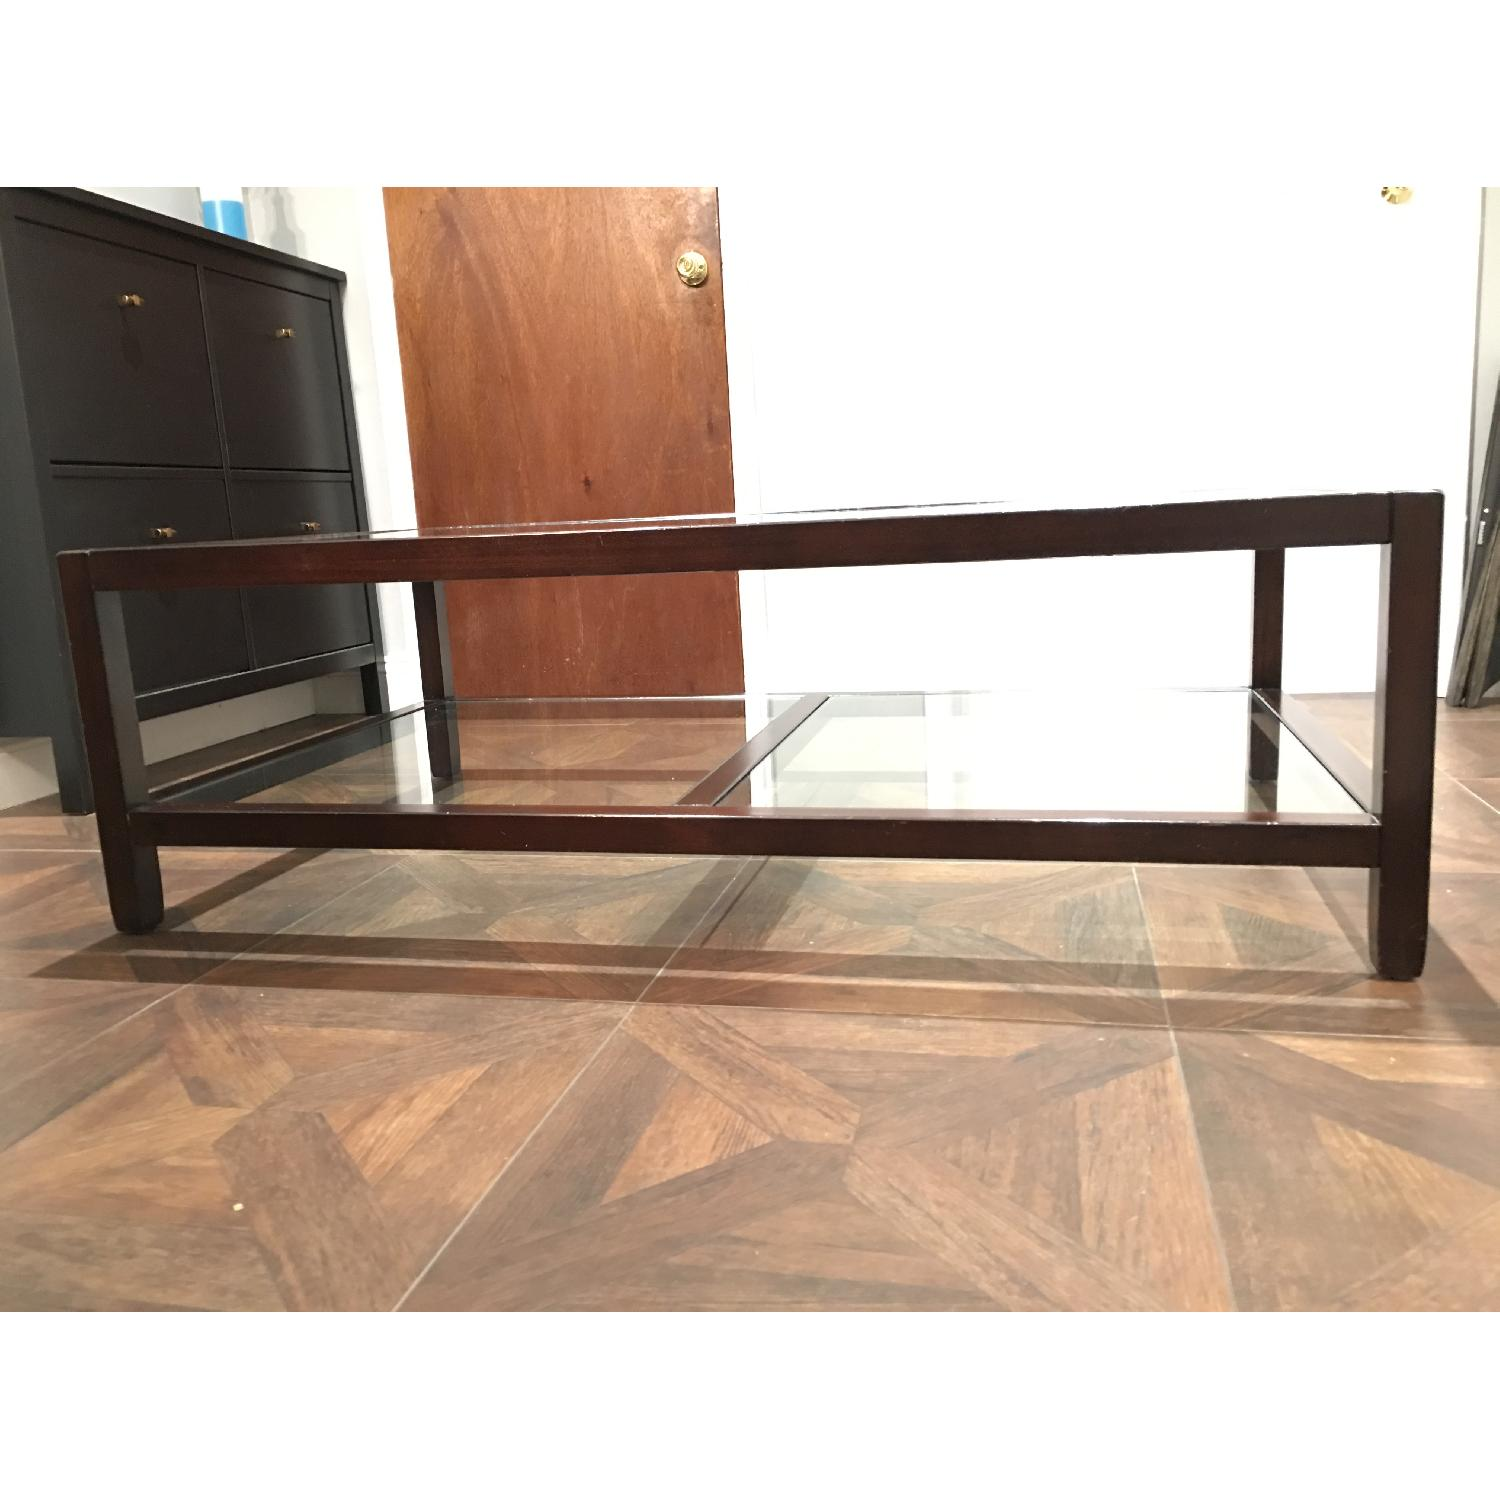 Pottery Barn Glass & Wood Coffee Table - image-11